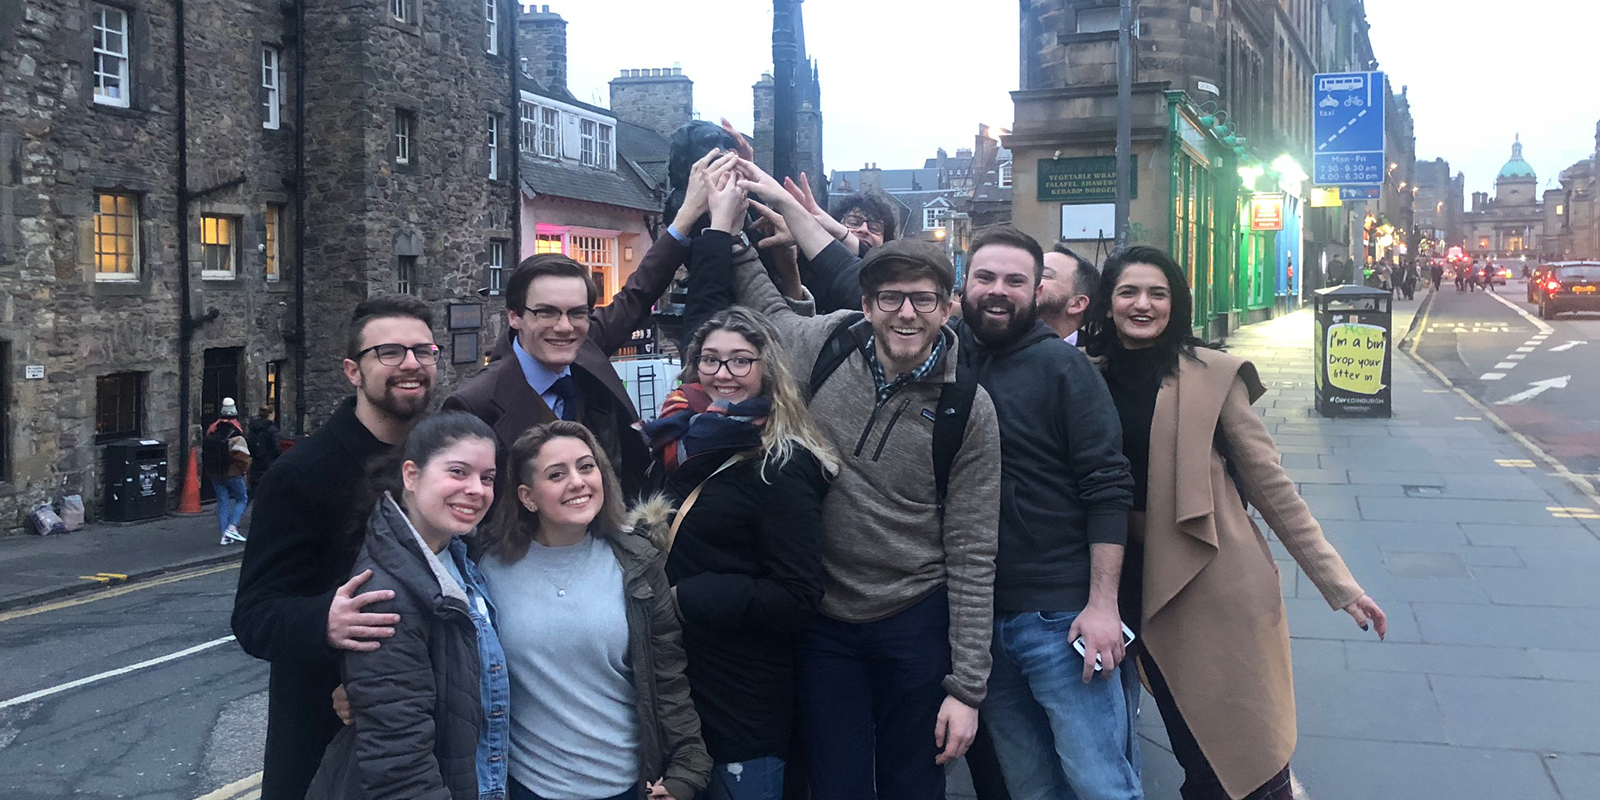 Dana Ibrahim, second from left in front, and fellow students touch a statue on street in Edinburgh, Scotland.